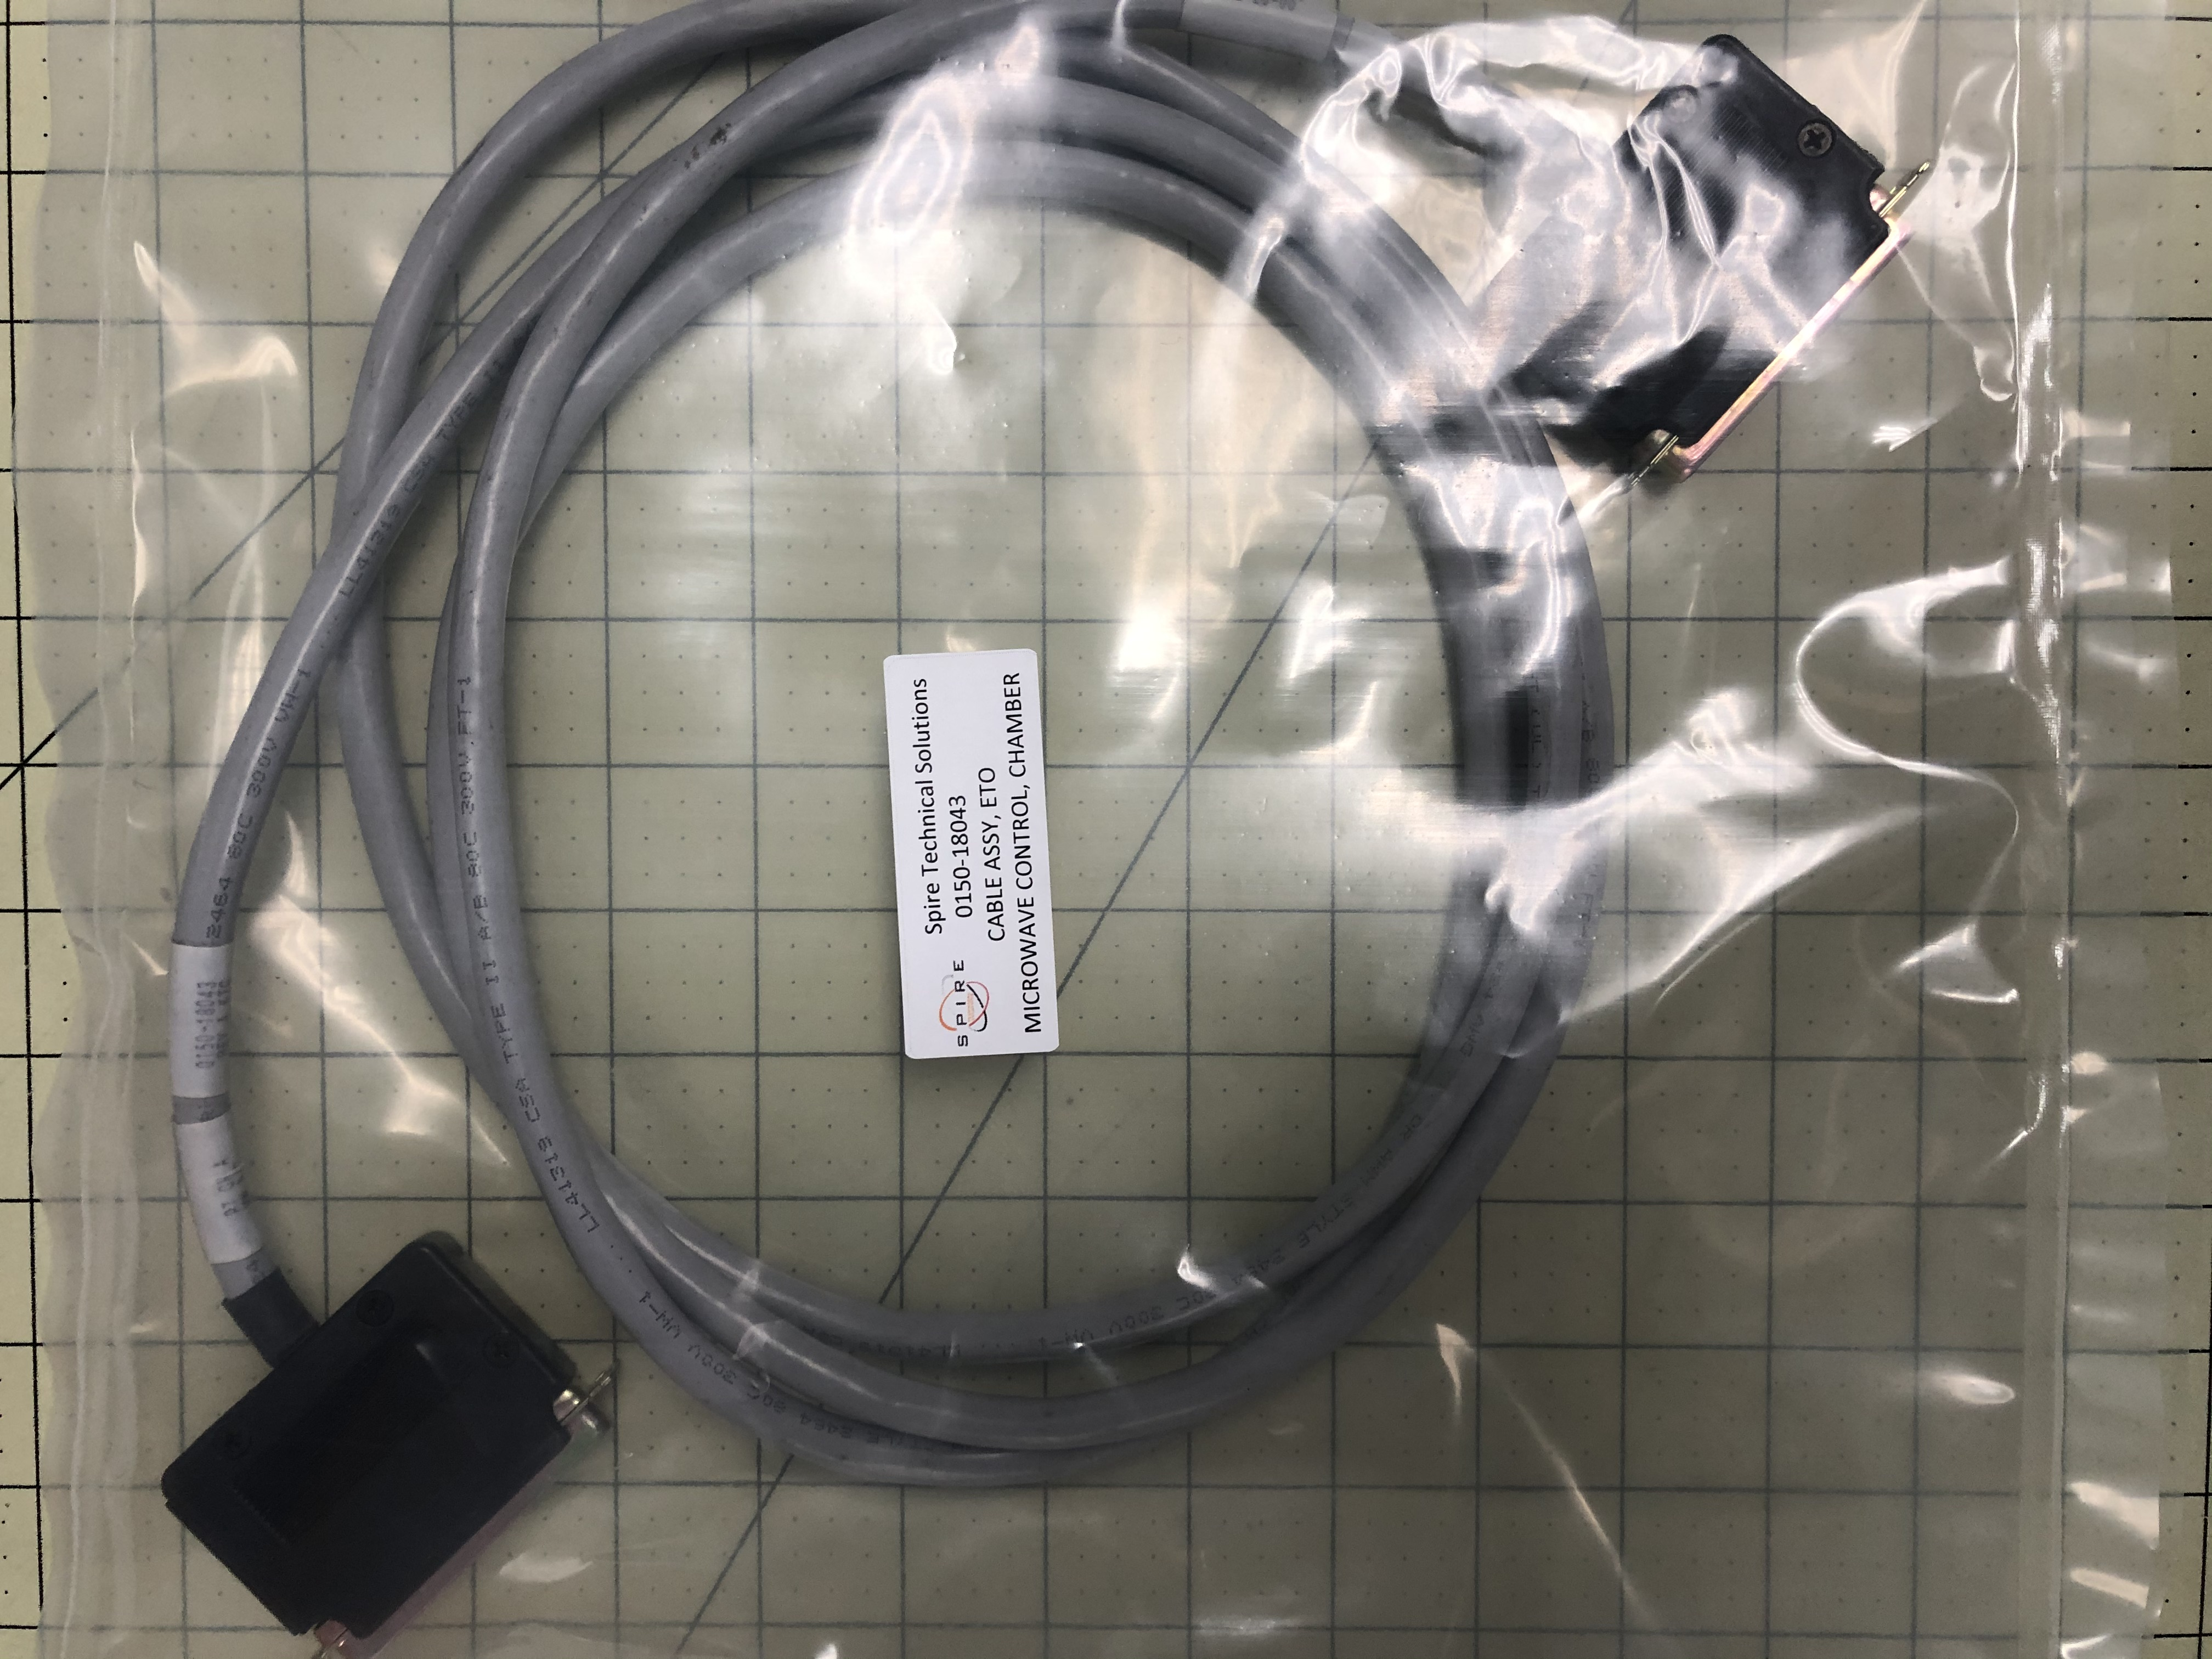 CABLE ASSY, ET MICROWAVE CONTROL, CHAMBER